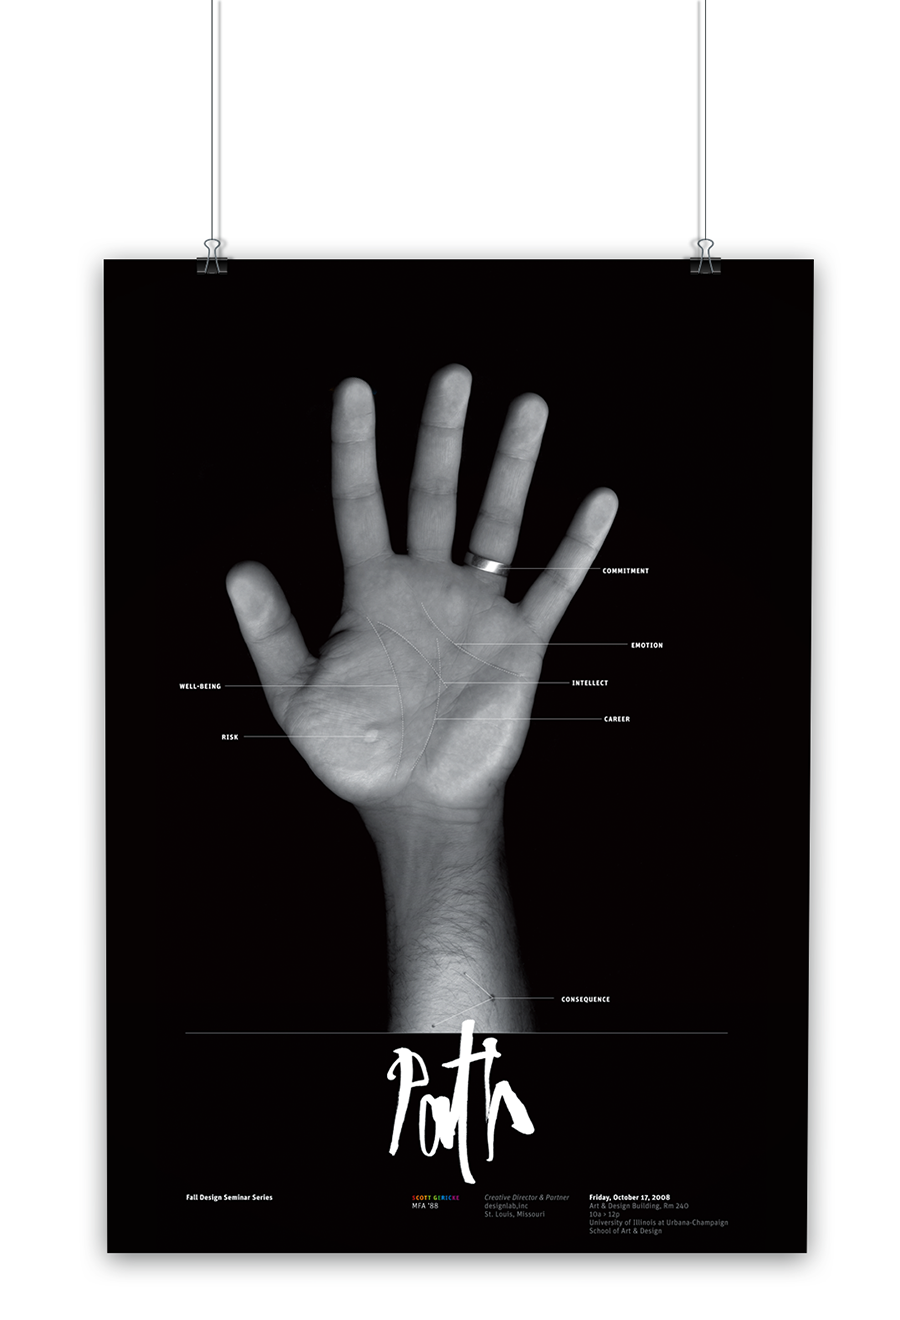 scottgericke_posters_hand.png